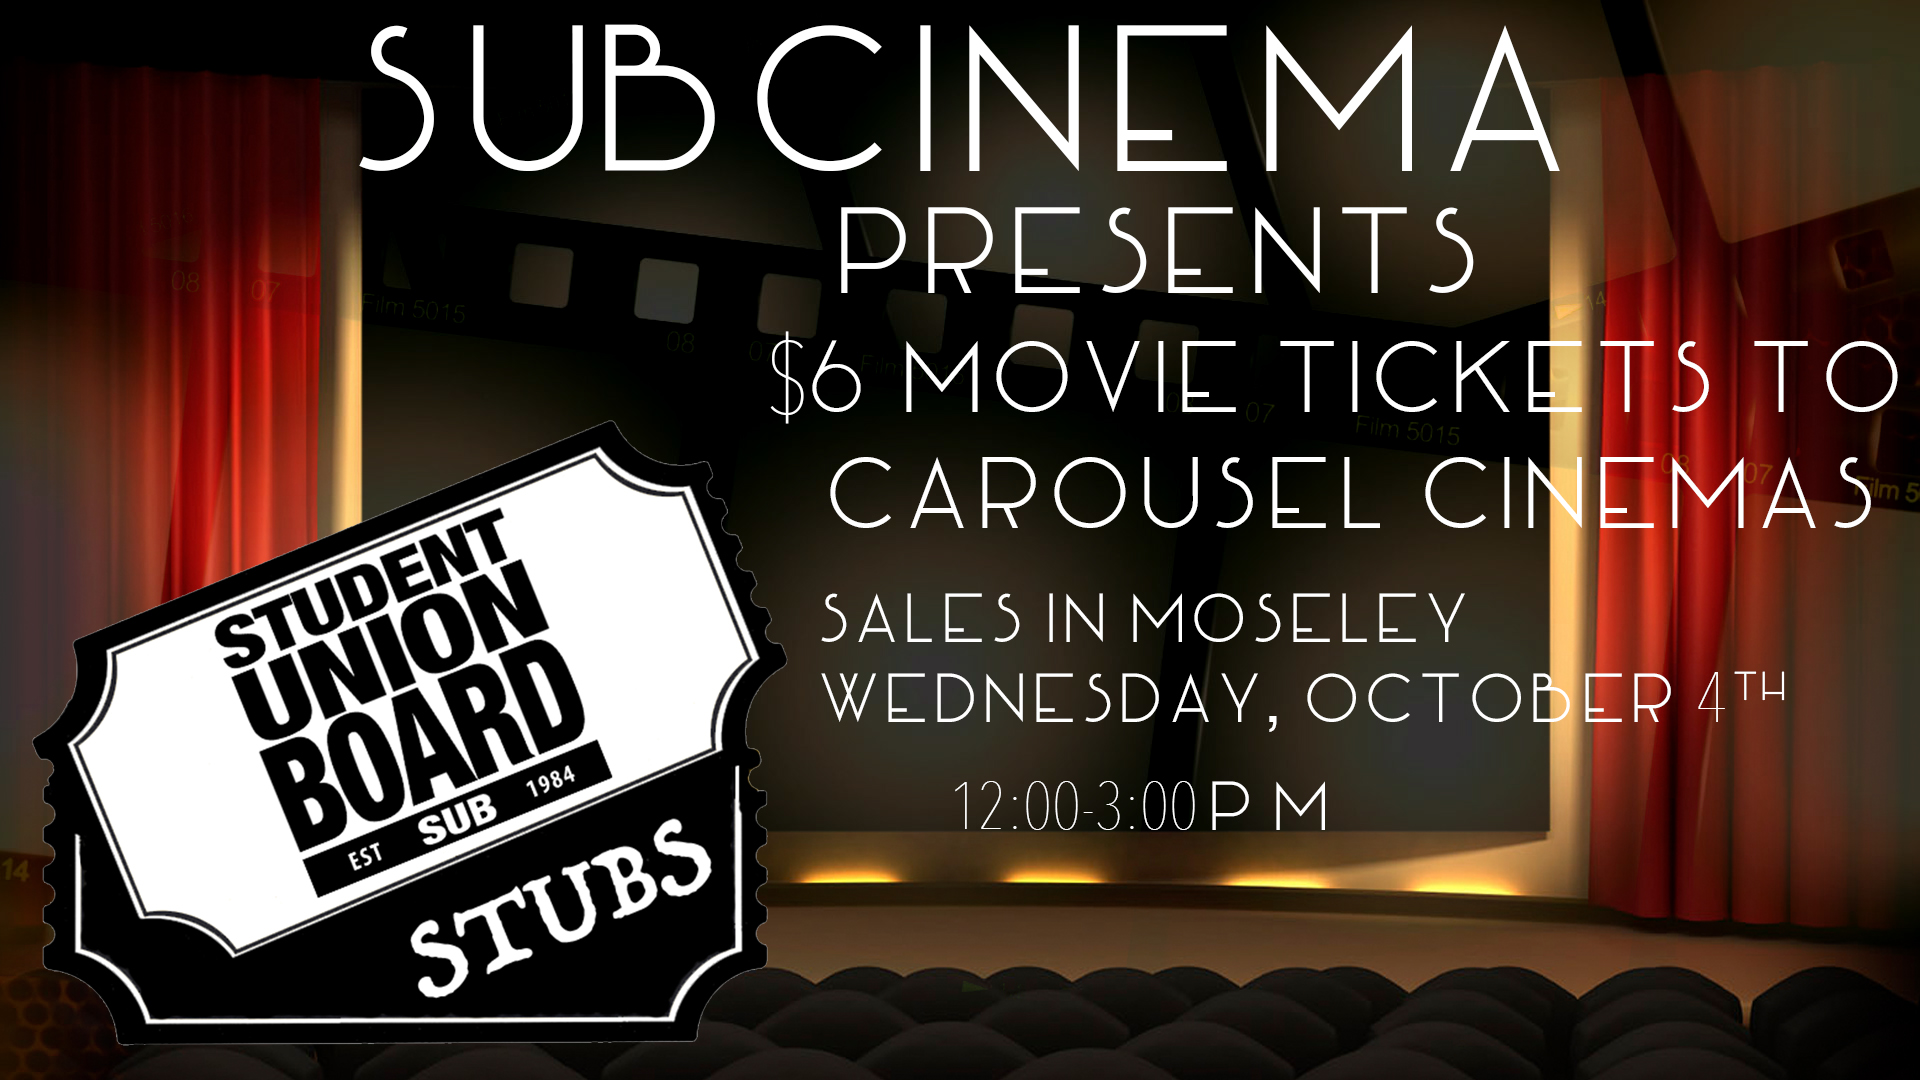 Don't pay full price for movie tickets! Get yours for only $6 in Moseley on October 4th from 12-3PM!